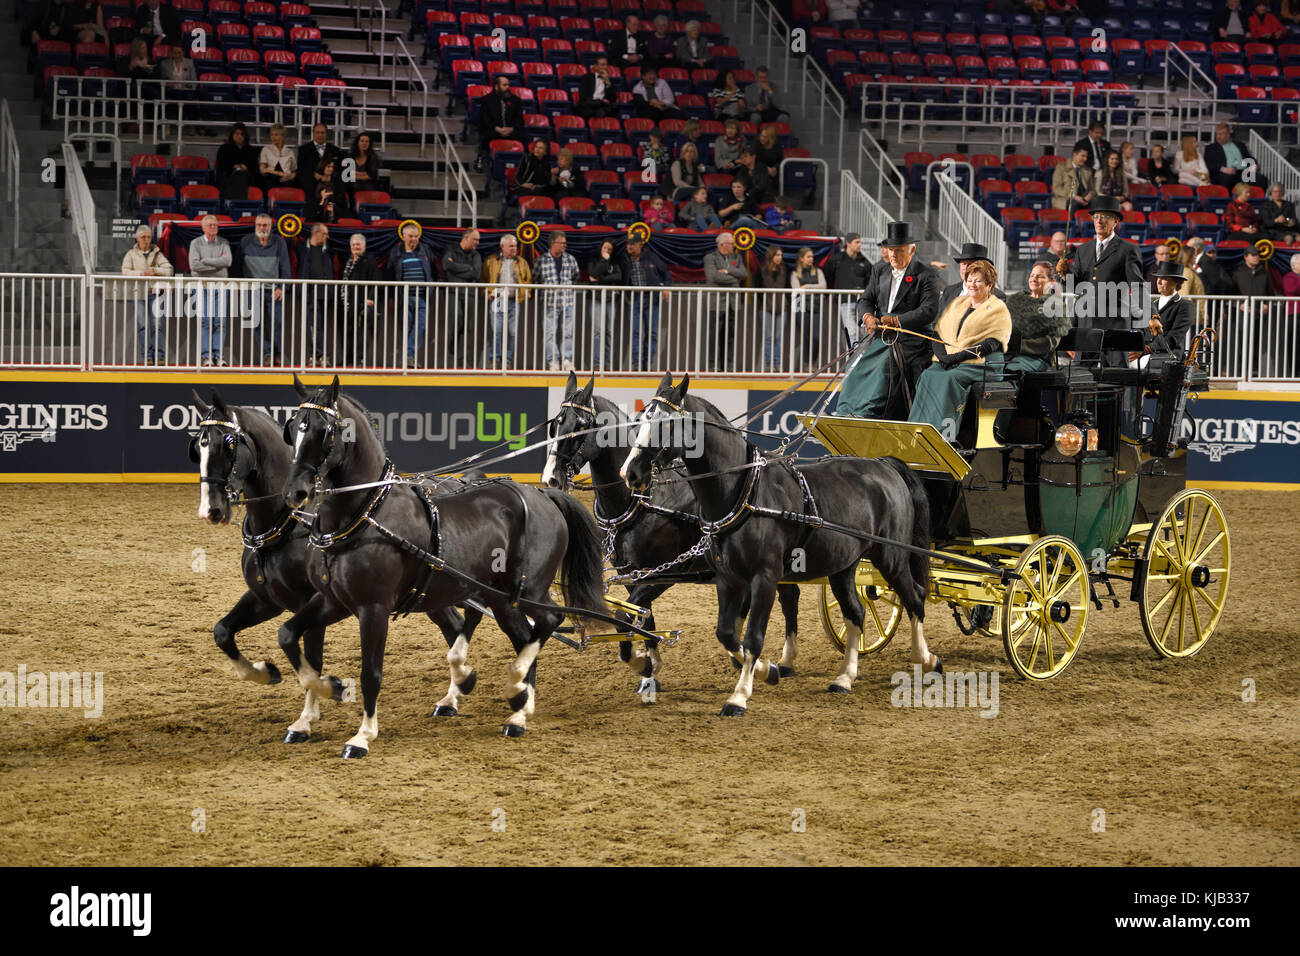 Four black horses at Green Meadows Four in Hand Coaching Class performance at The Royal Horse Show Ricoh Coliseum - Stock Image